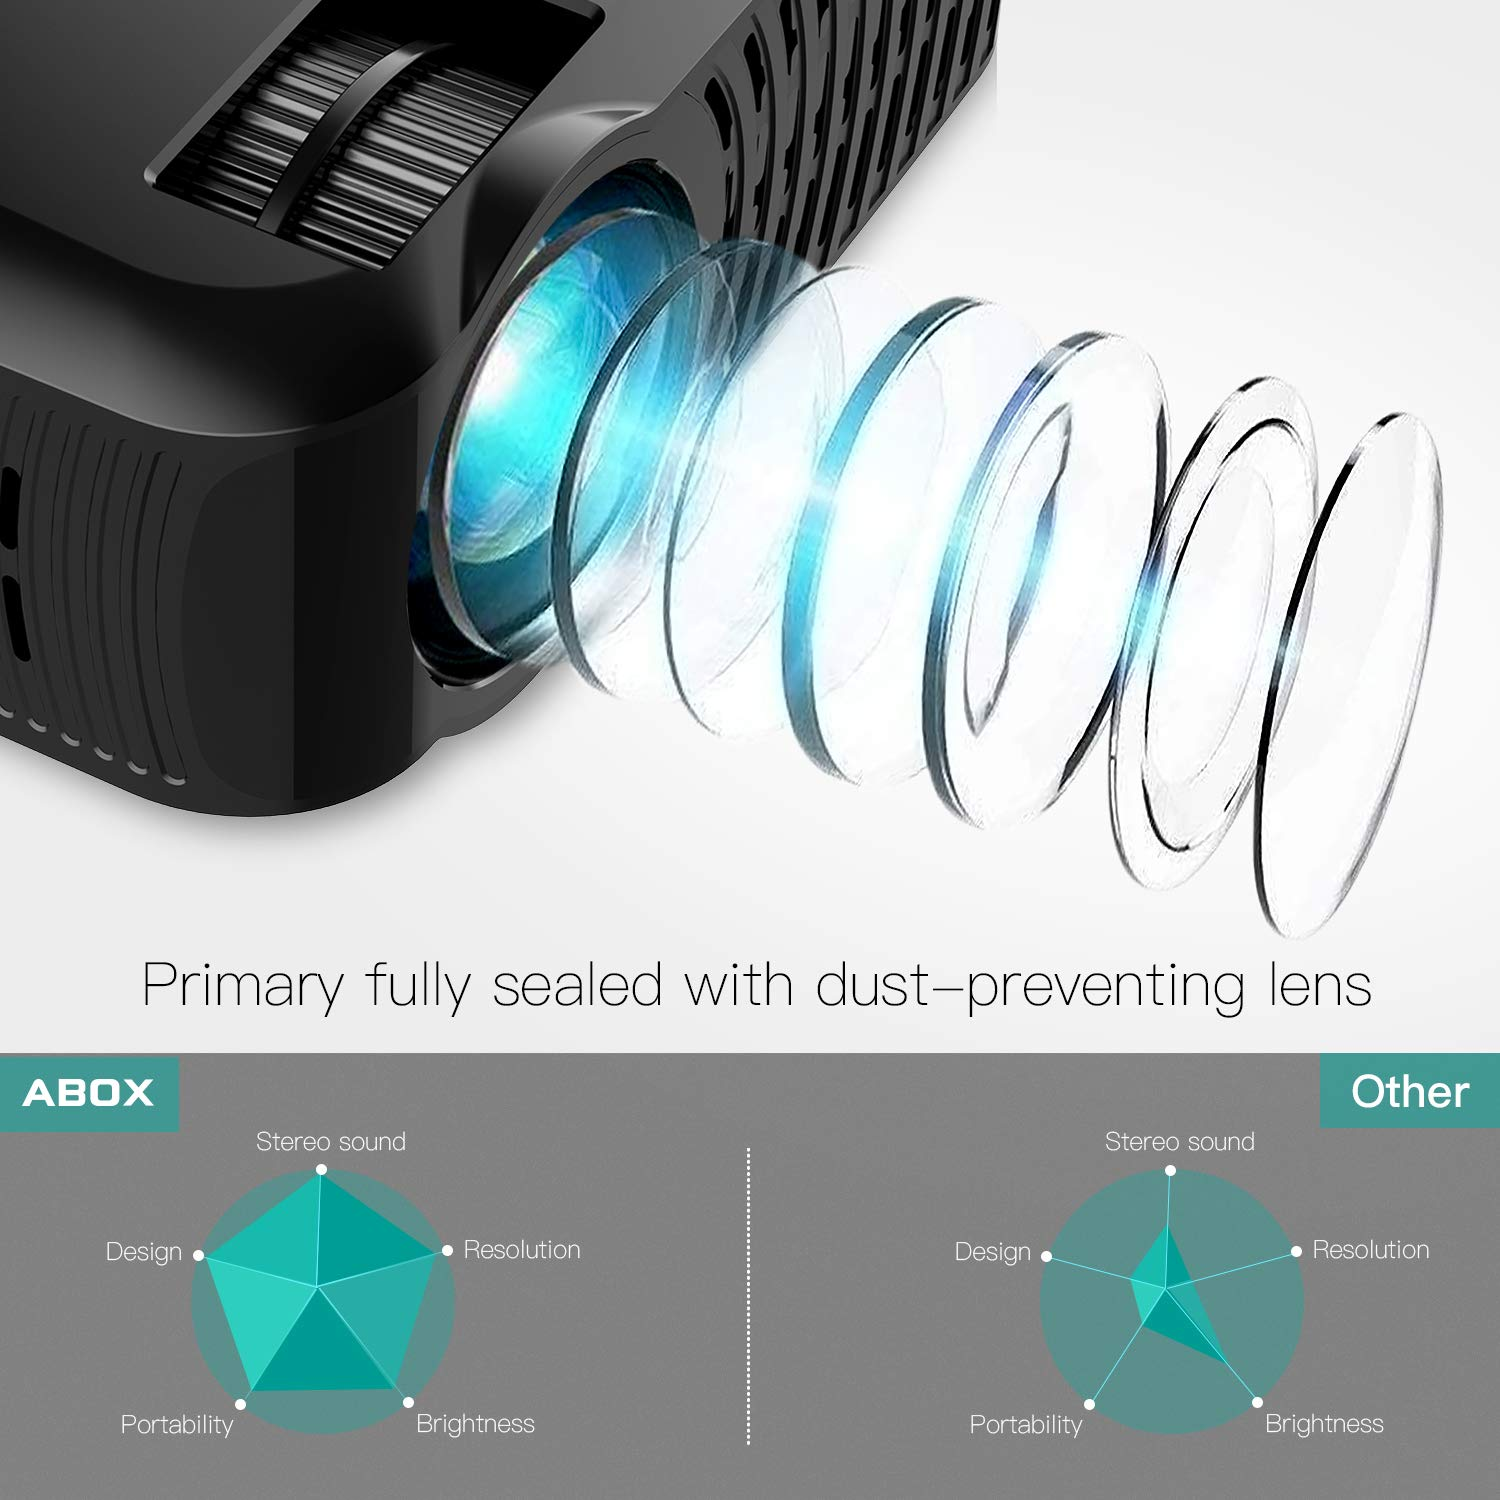 Projector, ABOX A2 LED Movie Video Projector with Full HD Native 720p, 100 ANSI Lumen, 180'' Big Screen, Hifi Speaker, Support 1080p with HDMI/USB/SD Card/VGA/AV Ports For Home Theater/Laptop/TV/Phones by GooBang Doo (Image #3)